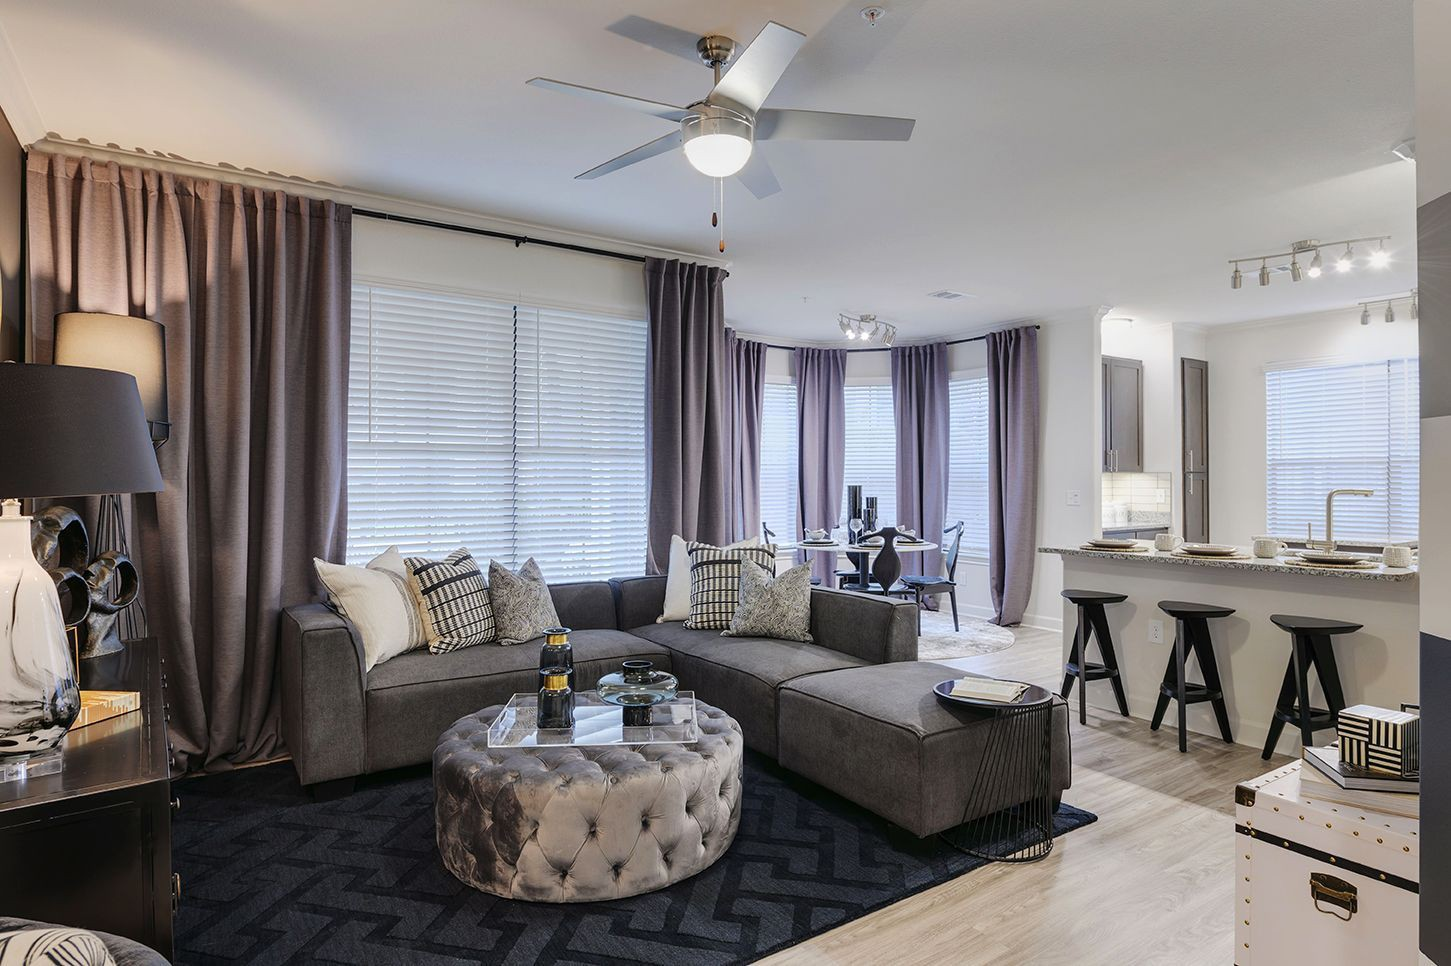 Tradewinds At Willowbrook for rent